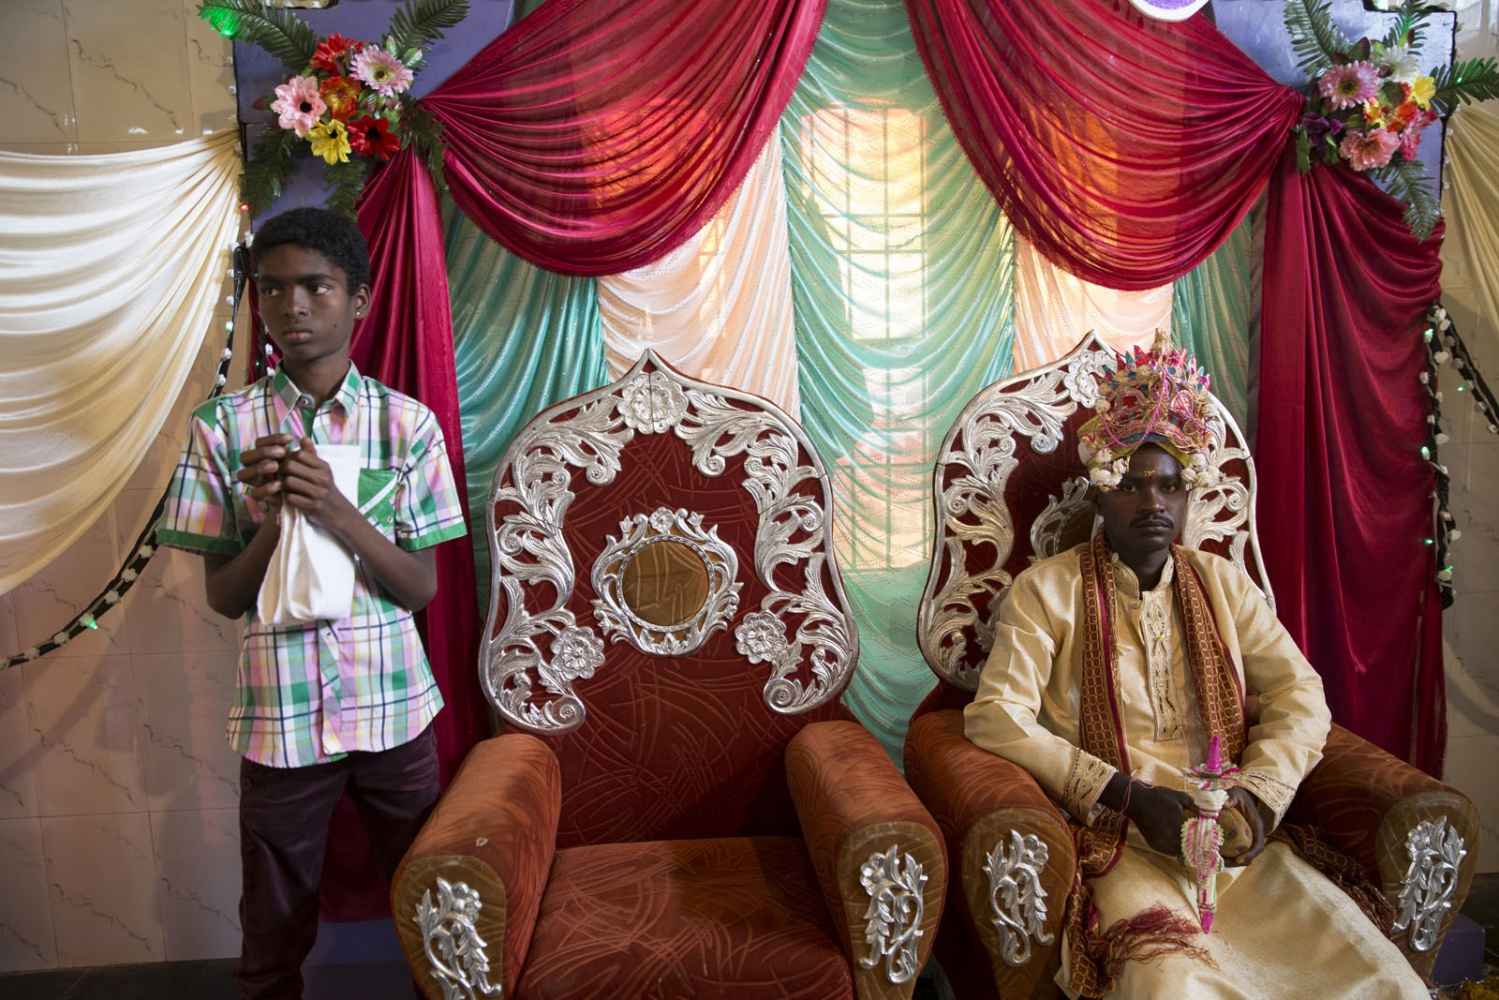 The Sidi groom sits patiently following the instructions by Brahmin priests during this Hindu wedding ceremony in Idgundi village. The first wedding of 2015 in this area receives many guests who come from Sidi villages all around. Uttara Kannada, India